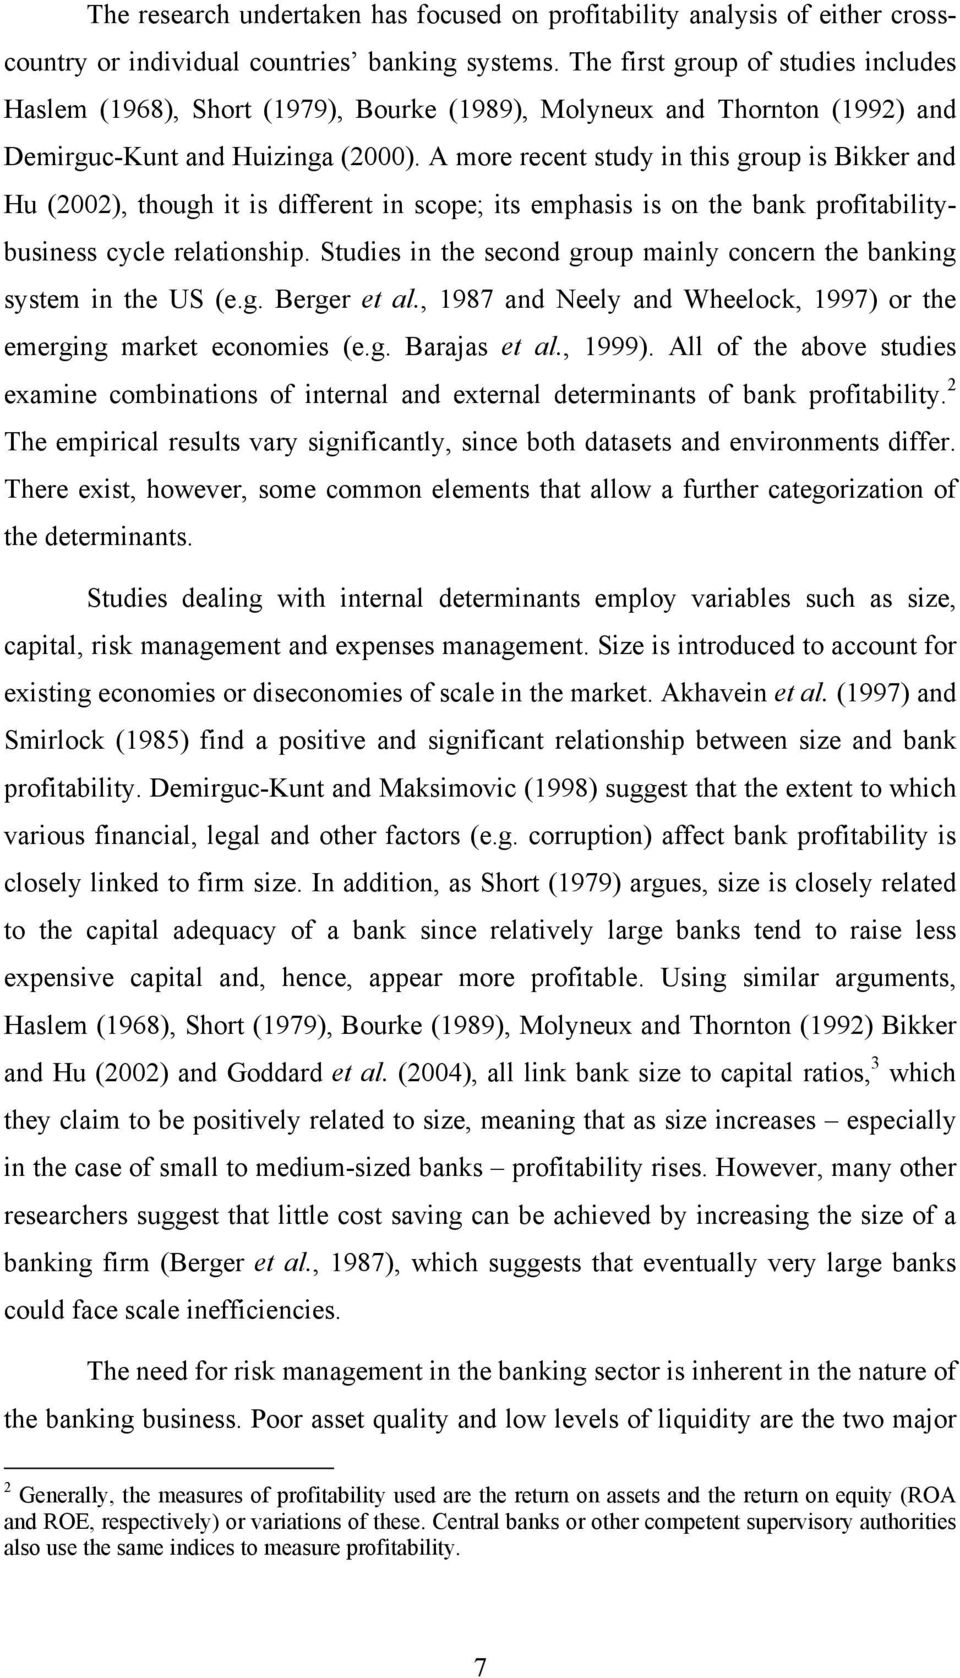 A more recent study in this group is Bikker and Hu (00), though it is different in scope; its emphasis is on the bank profitabilitybusiness cycle relationship.